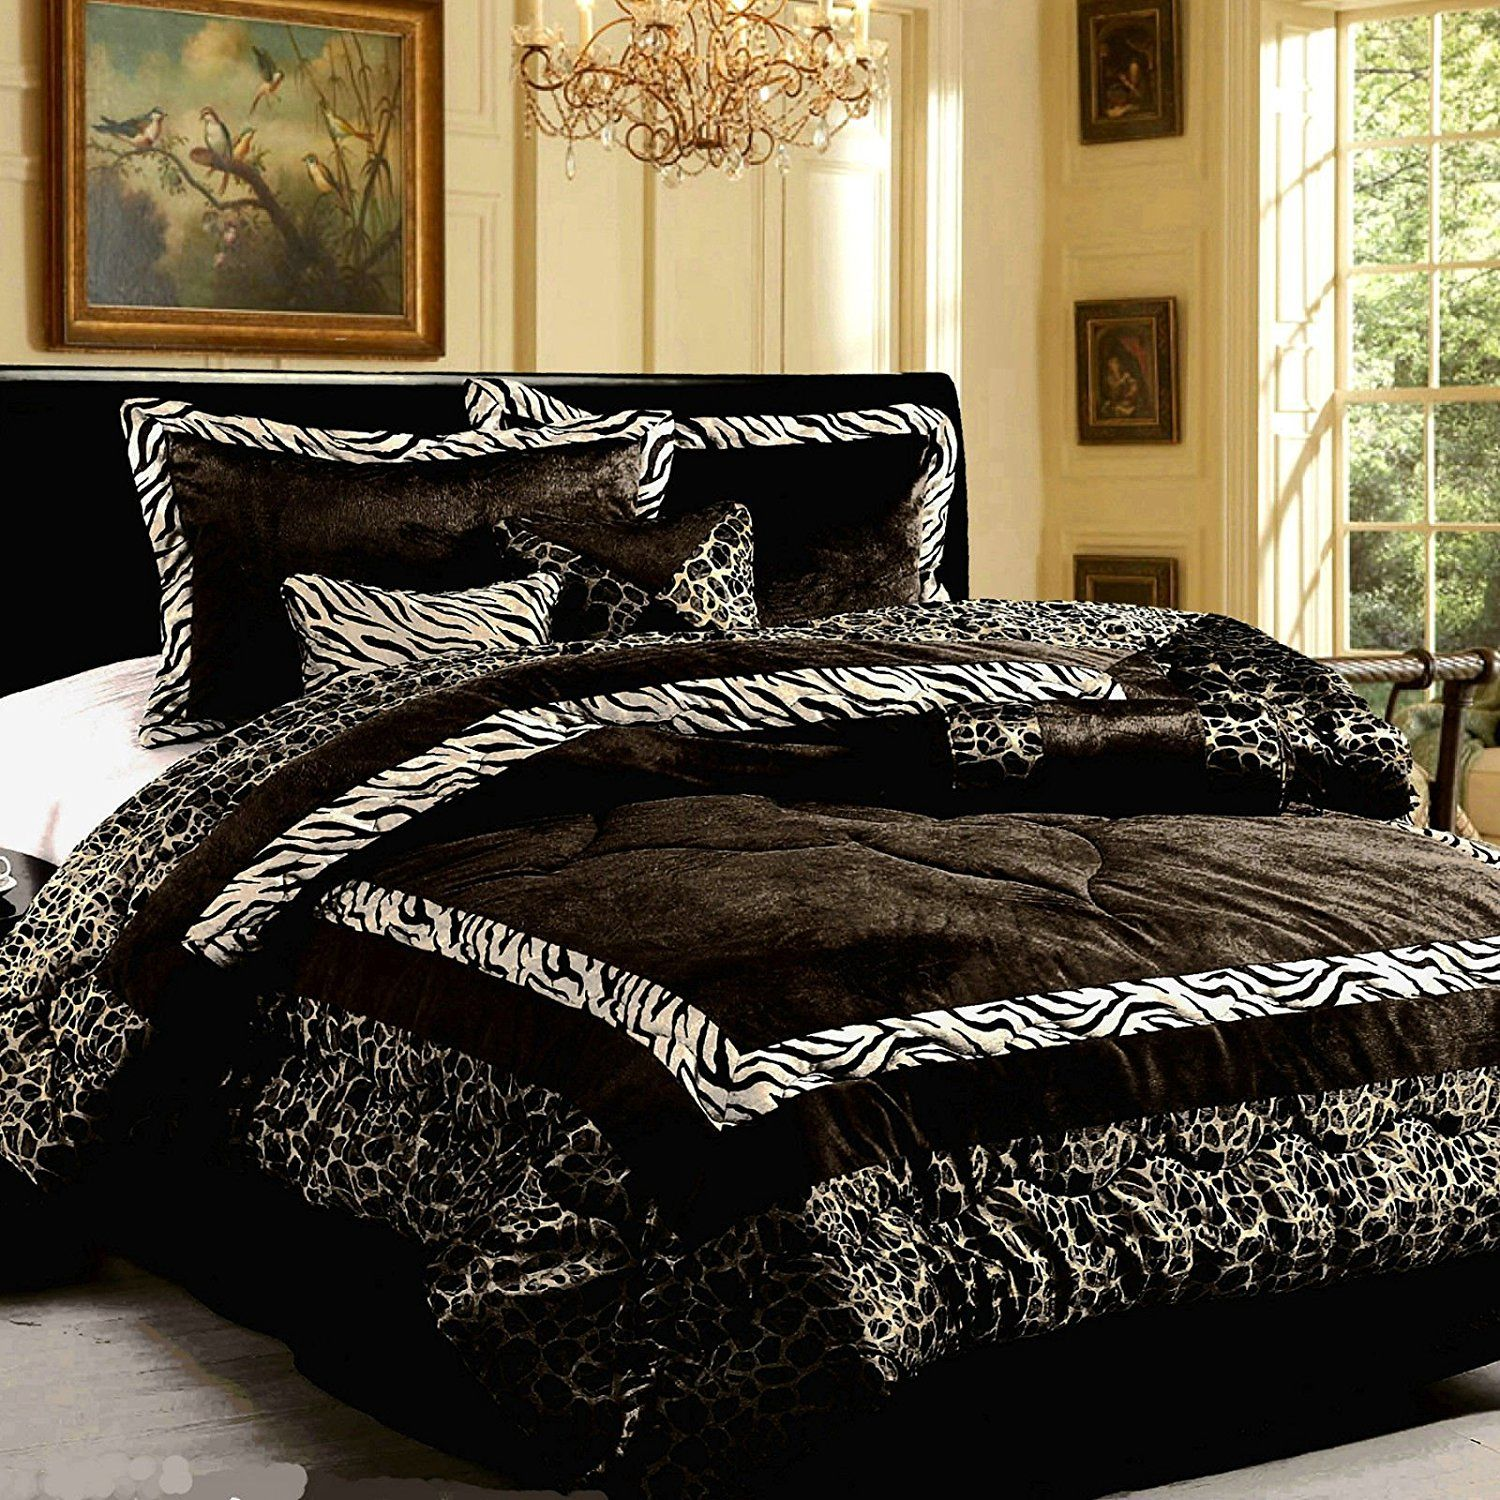 Animal print bedroom sets - Dovedote Black Safari Zebra Animal Print Comforter Set Queen 7 Pieces